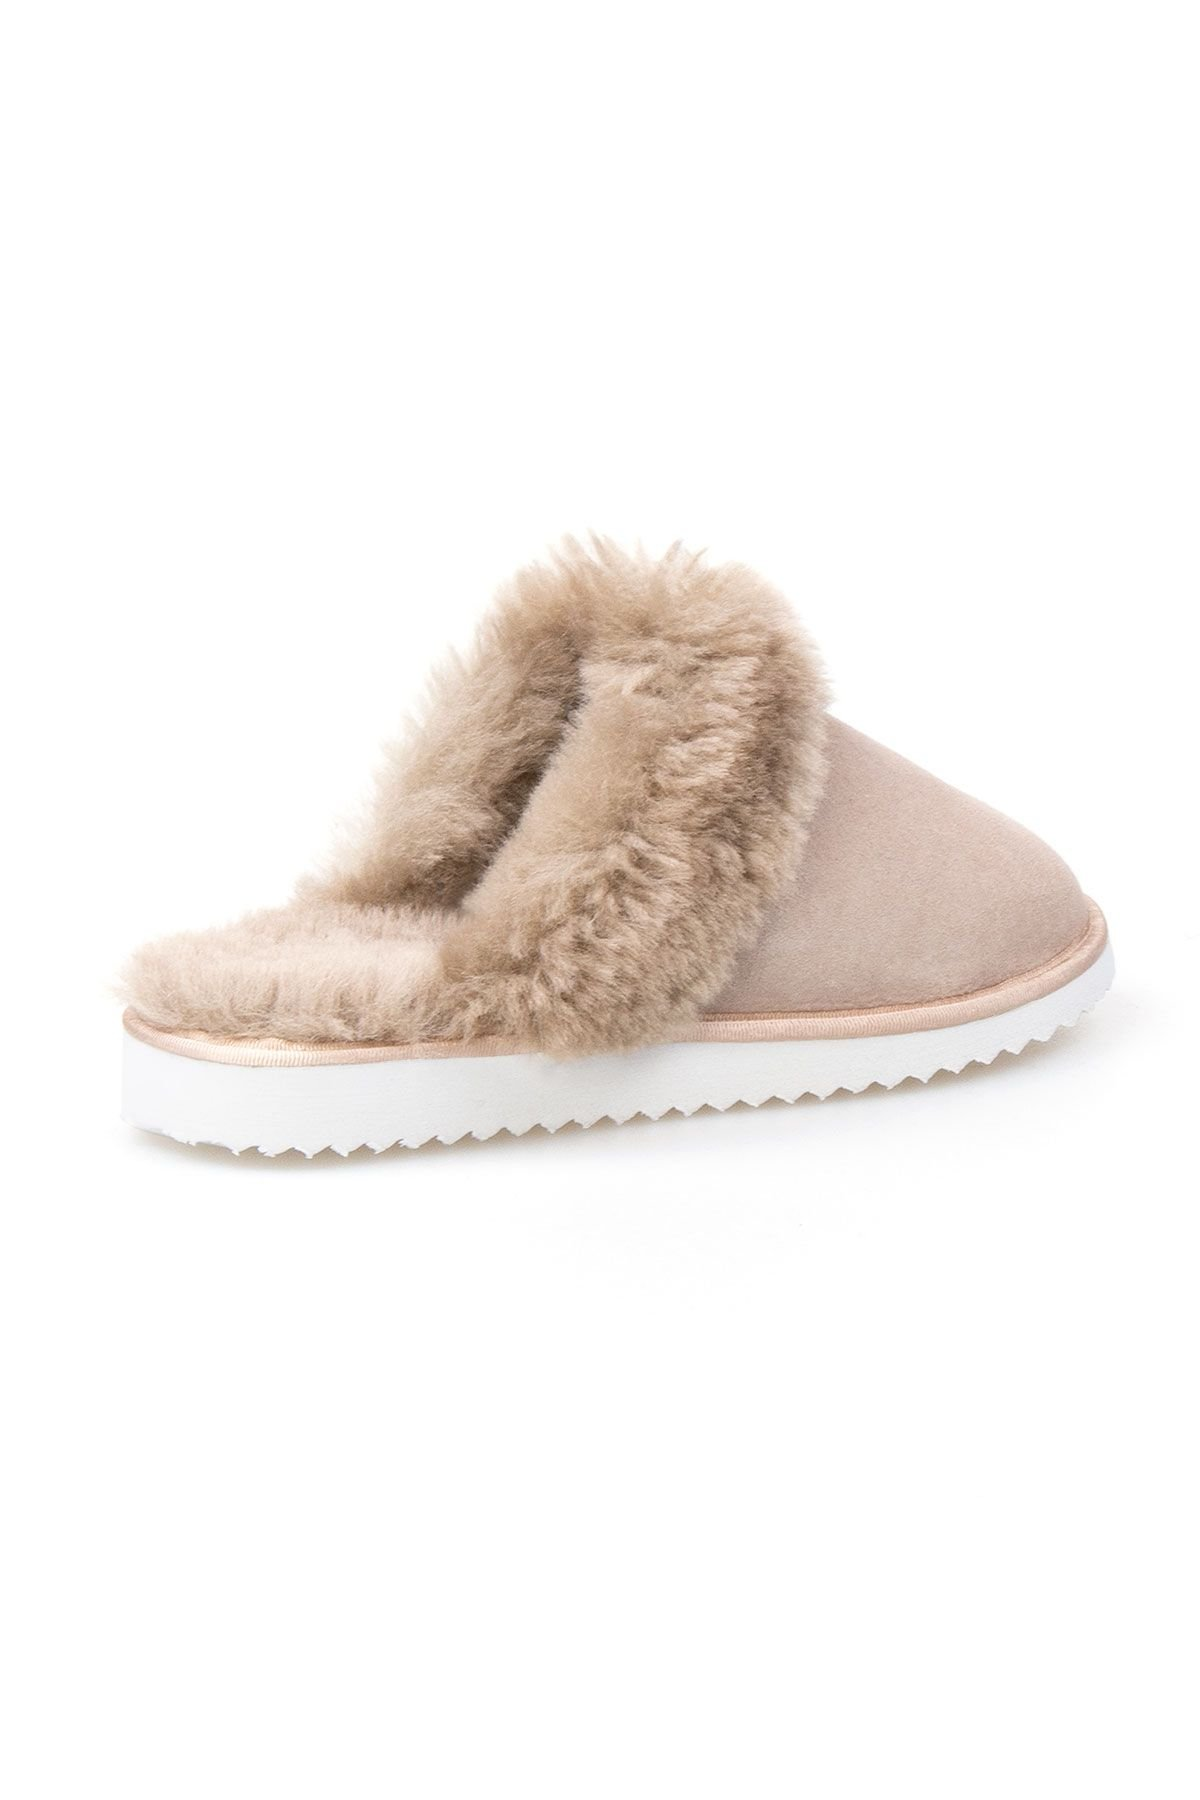 Pegia Genuine Sheepskin Women's Slippers 191105 Visone